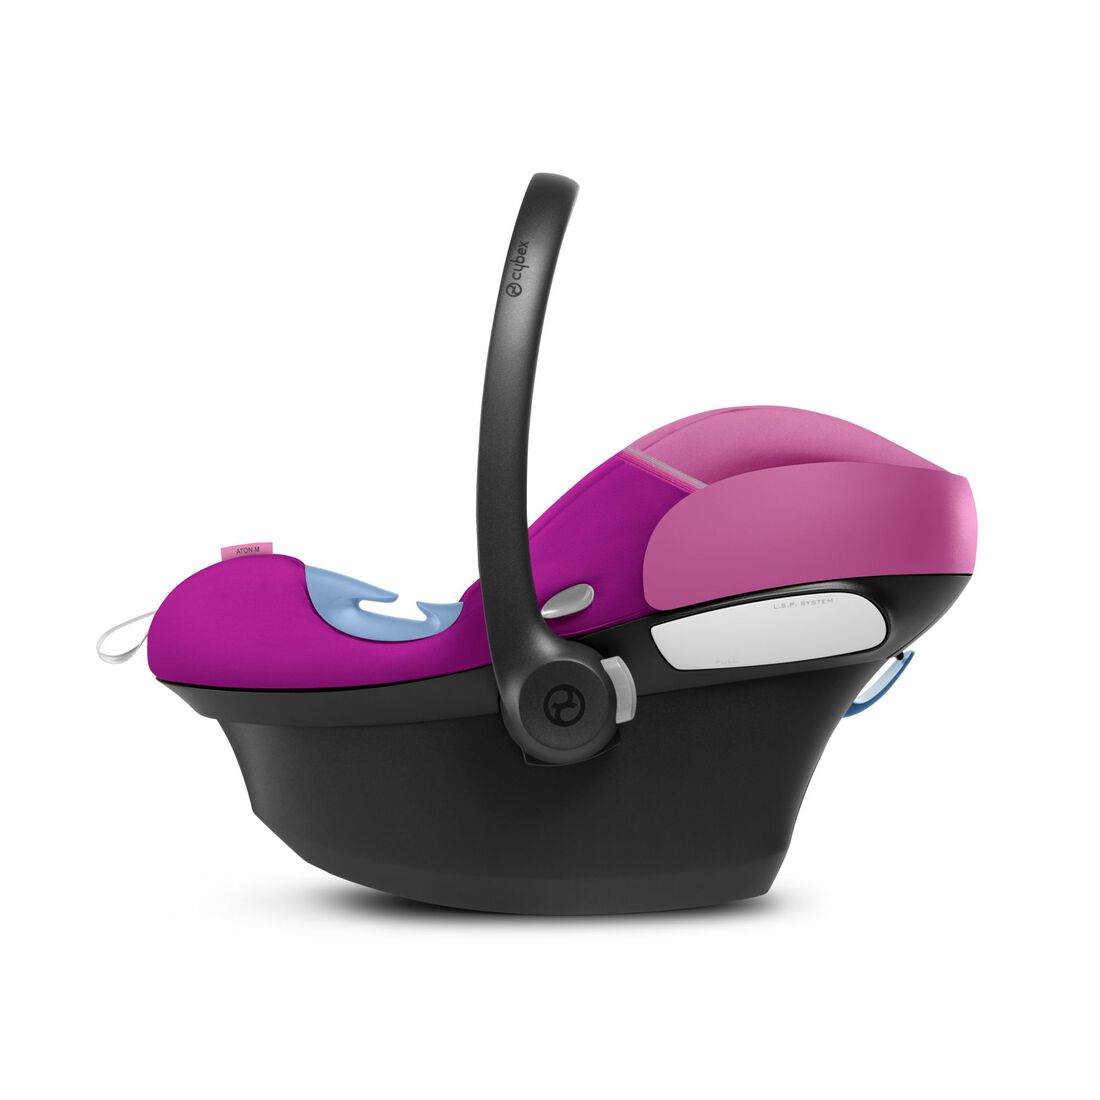 CYBEX Aton M i-Size - Magnolia Pink in Magnolia Pink large image number 3